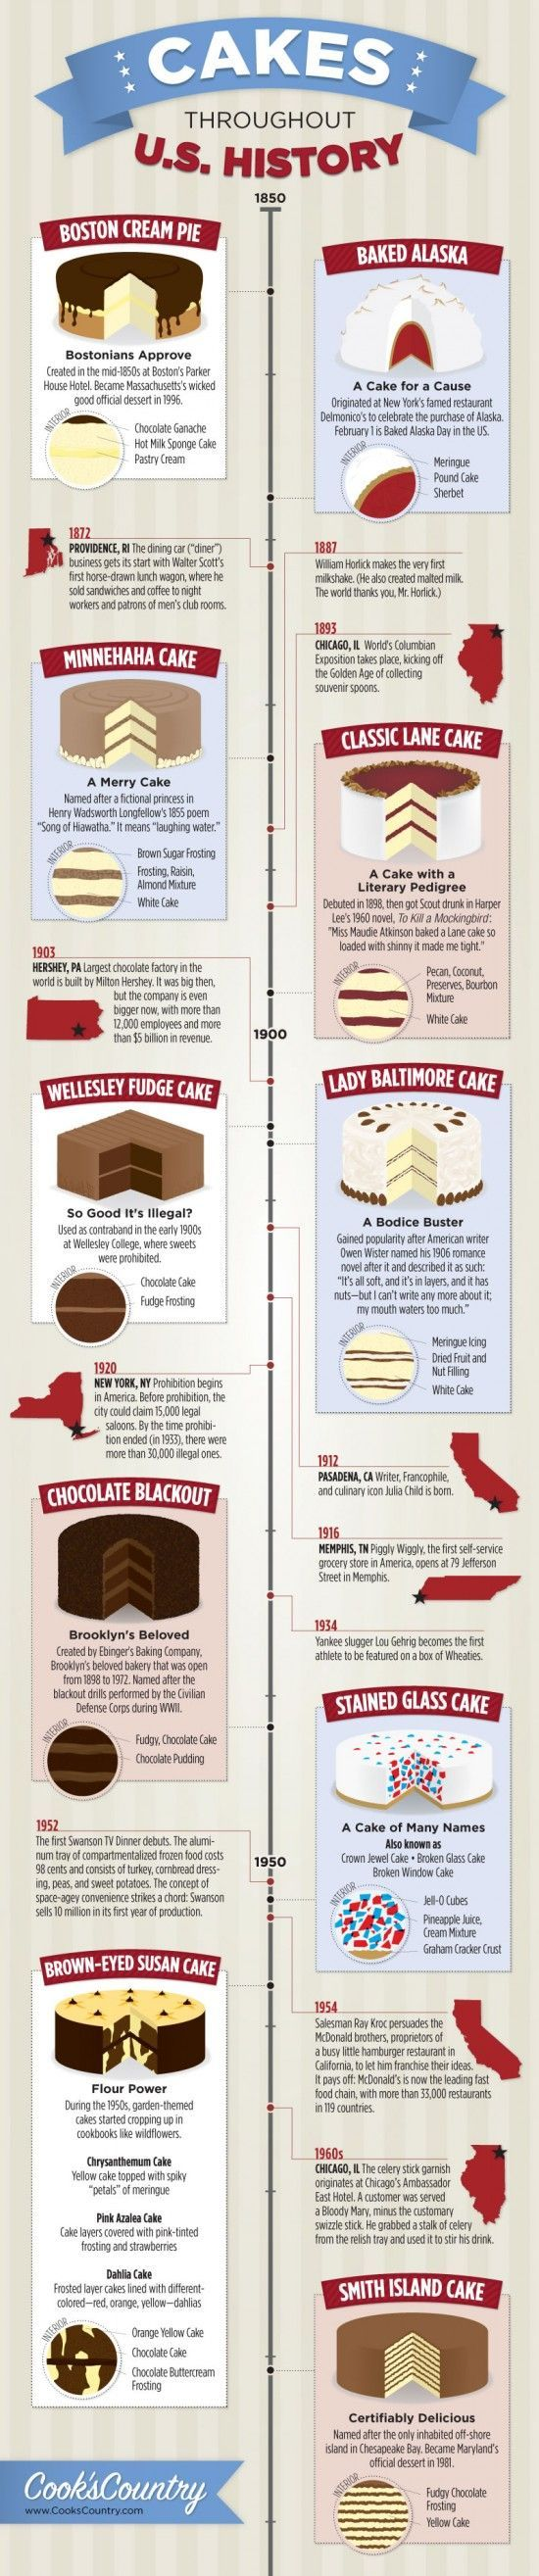 A look at a #timeline of #cake history across #America - Discover more in this #infographic - http://www.finedininglovers.com/blog/food-drinks/history-of-cake-america/: